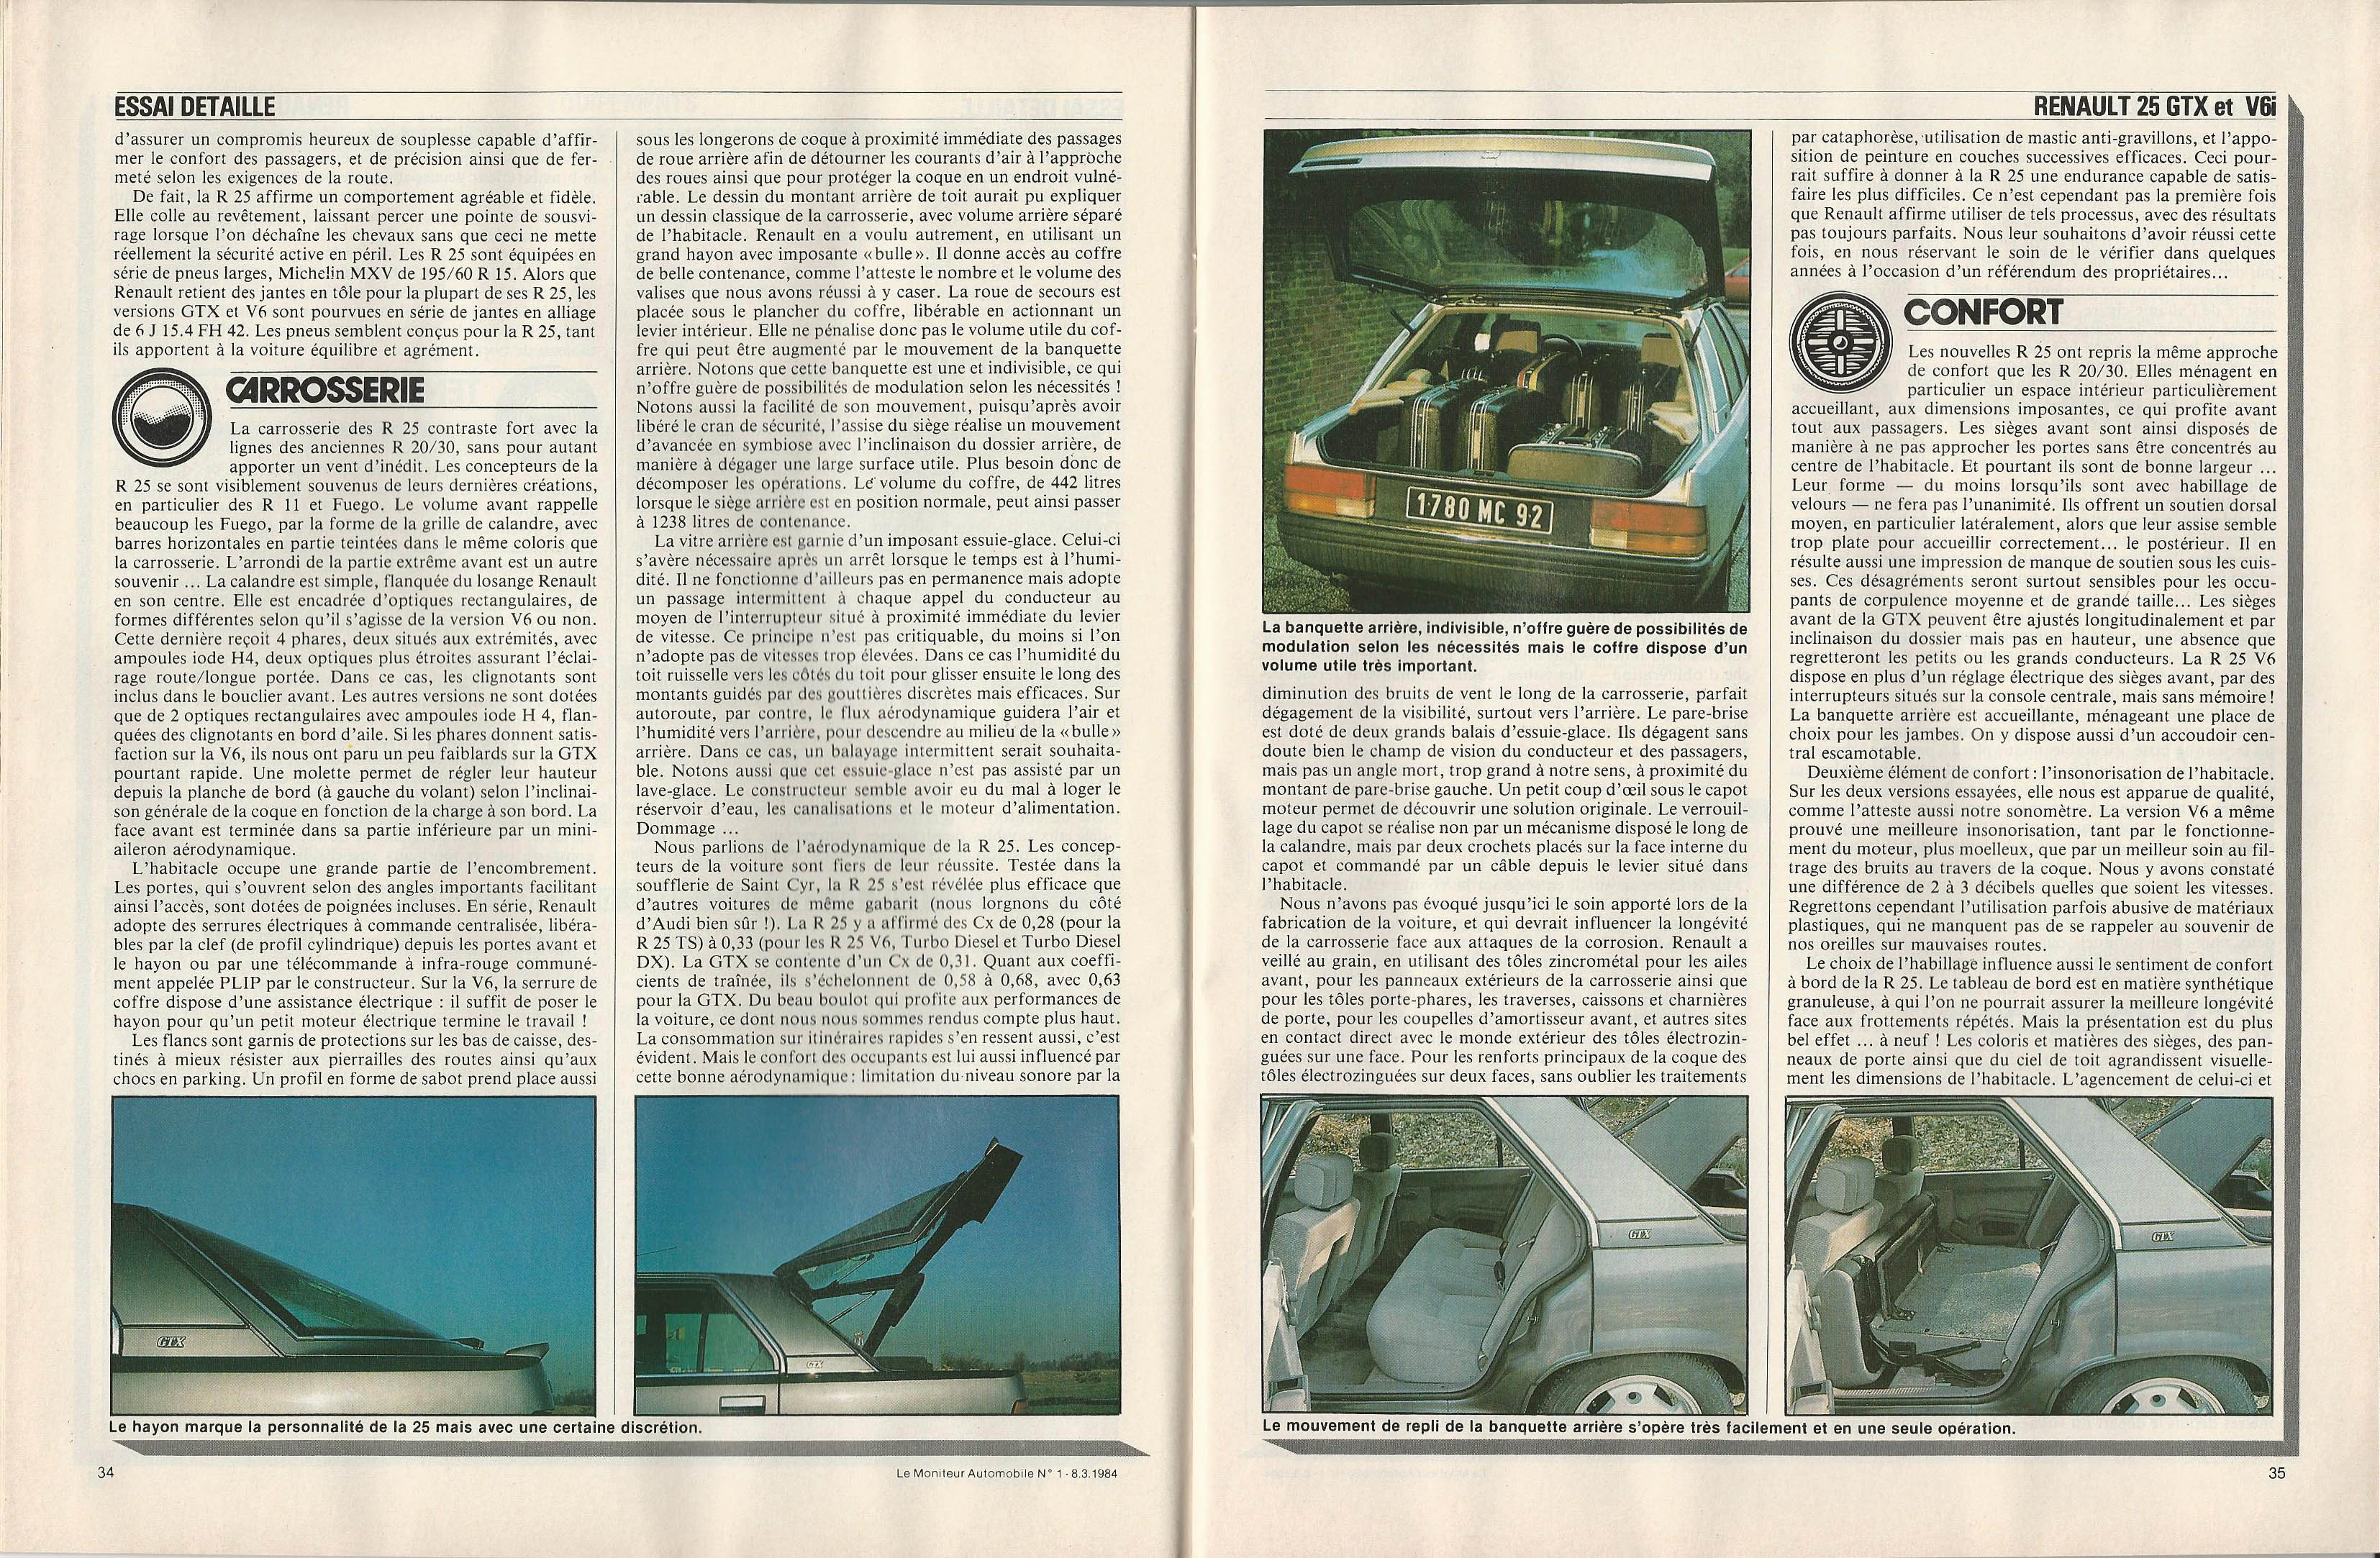 Moniteur Automobile 01 - 08 Mars 1984 (18)